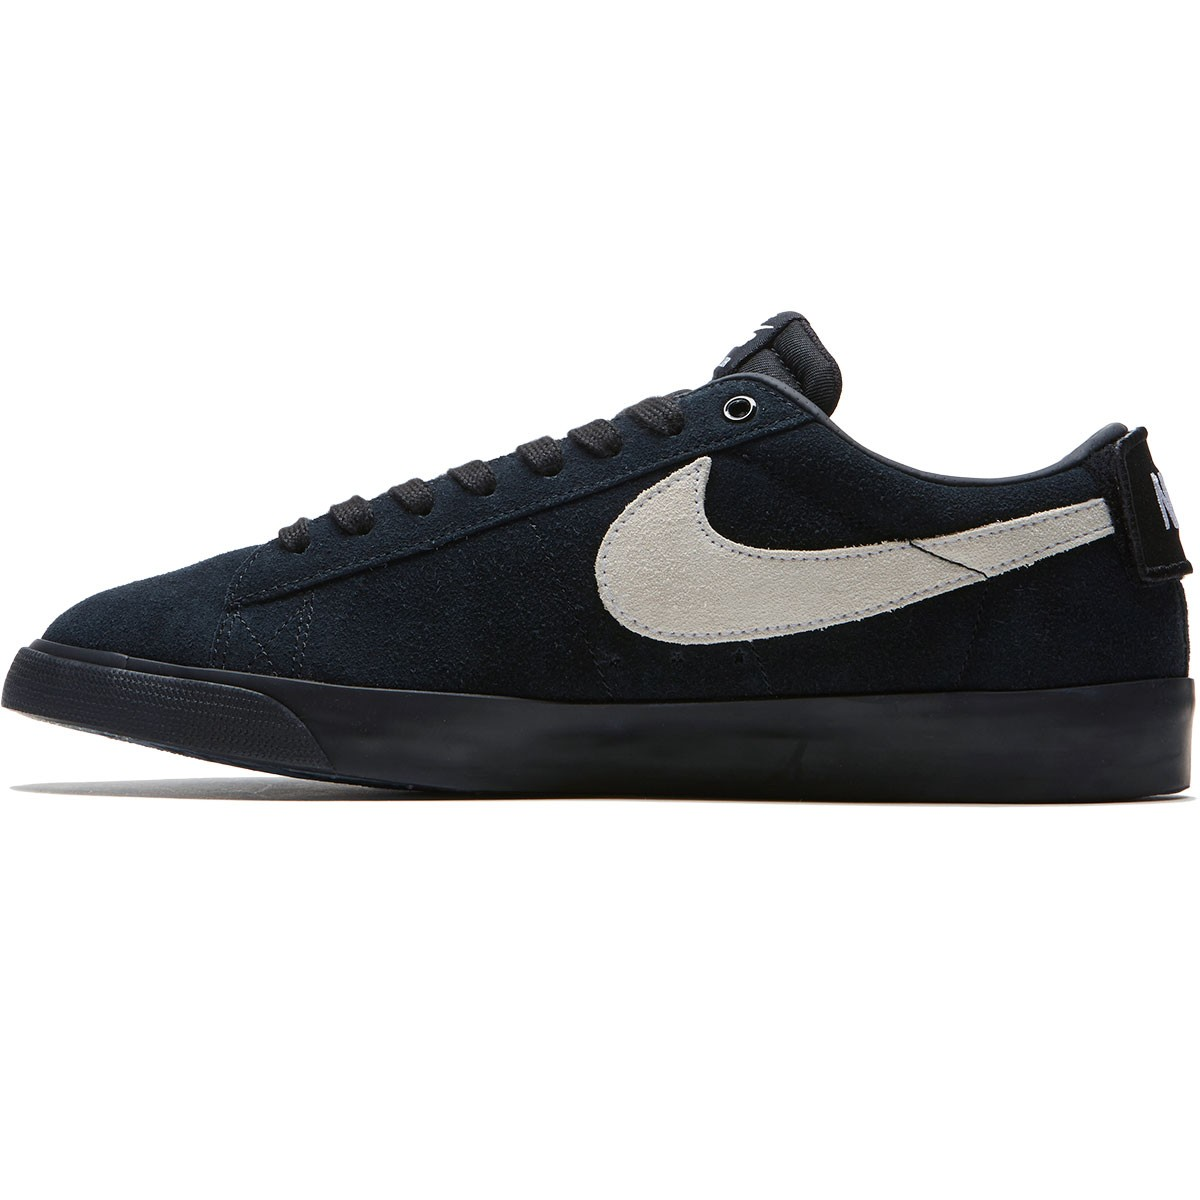 Cadera Infidelidad túnel  Nike SB Air Zoom Blazer Low GT Black Blocks Shoes